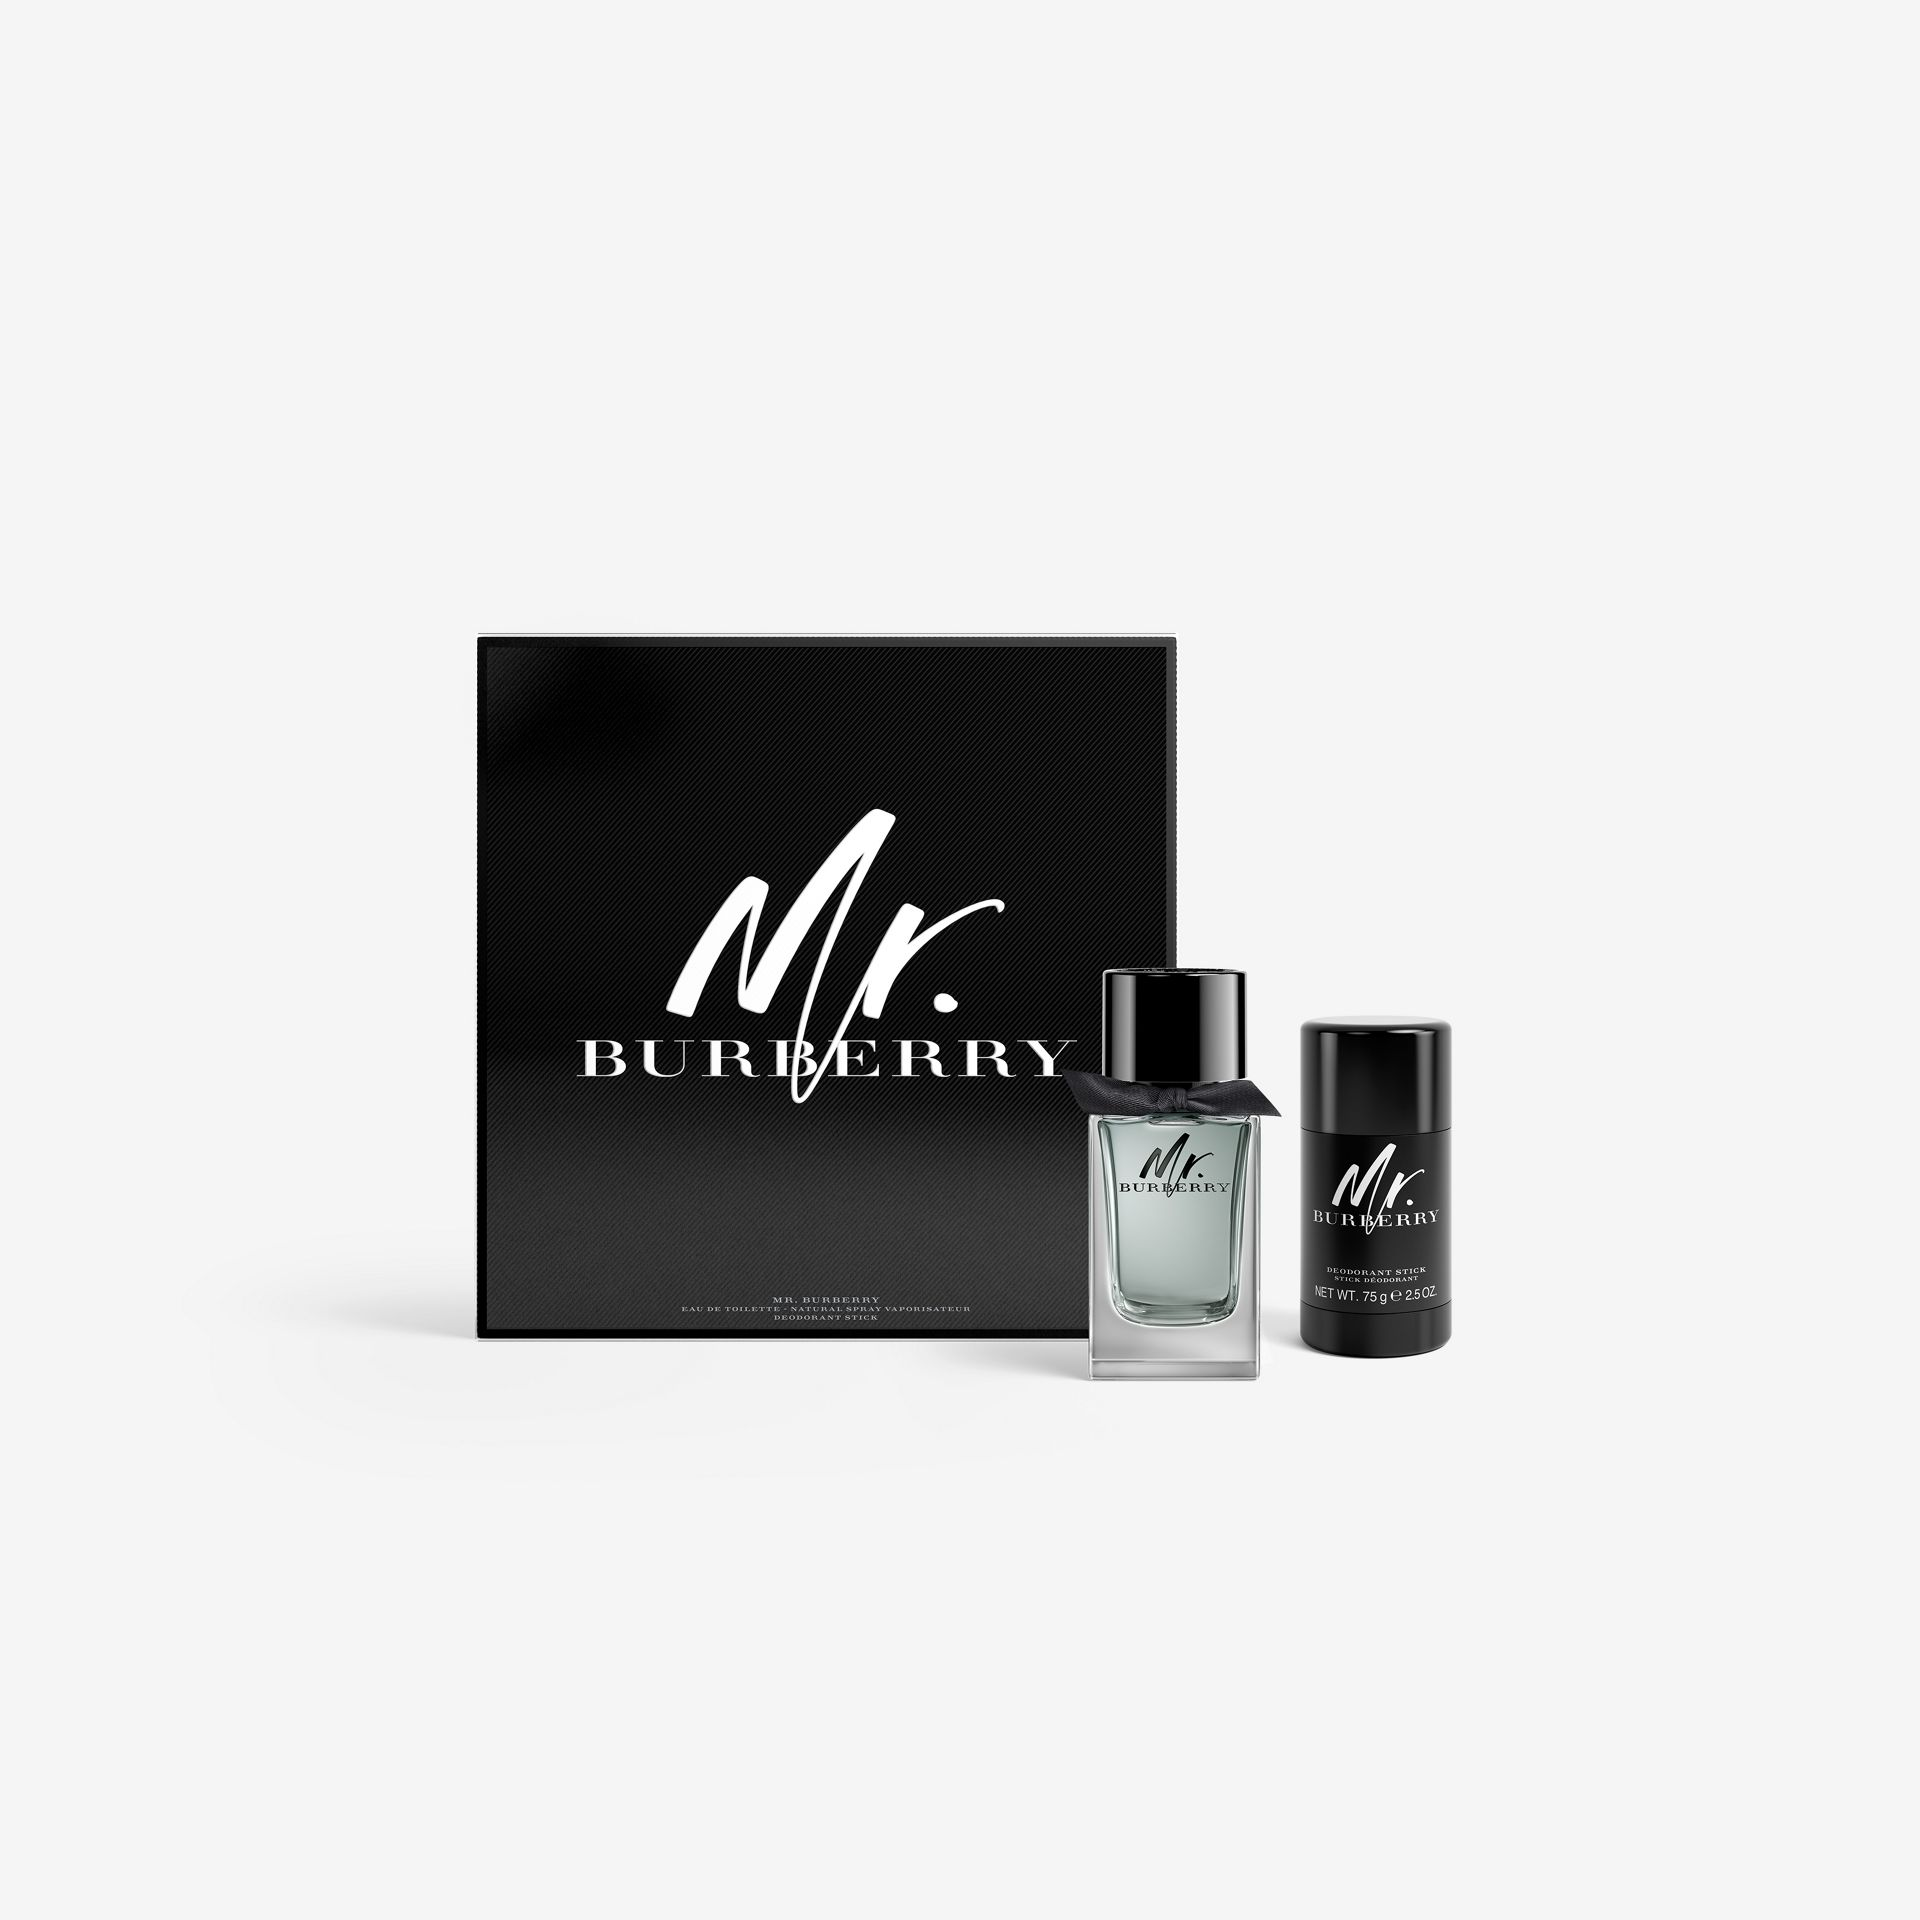 Mr. Burberry Eau de Toilette Luxury Set - gallery image 1